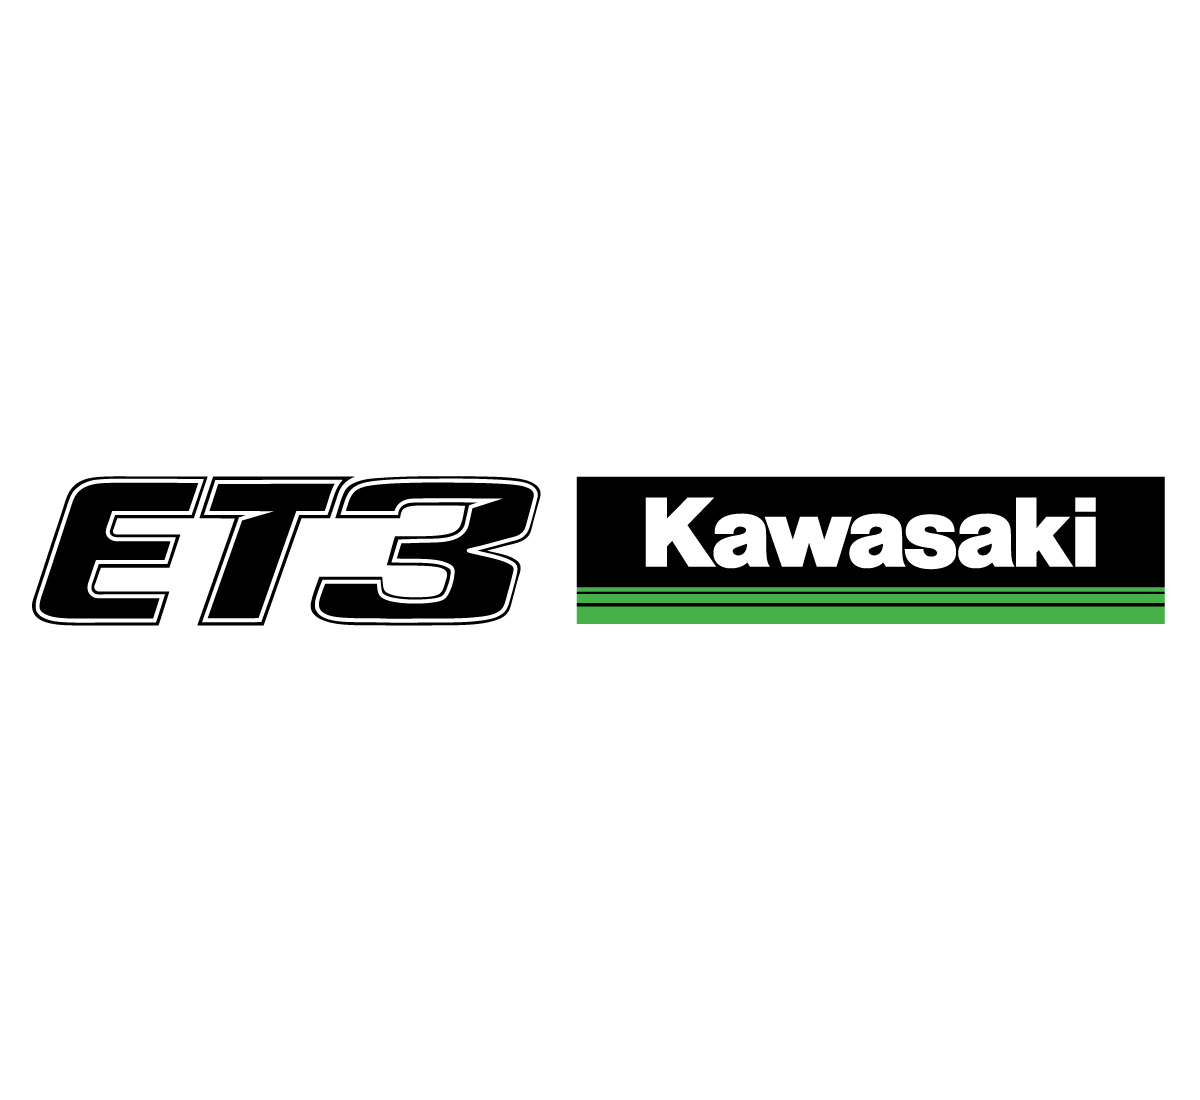 ET3 And Kawasaki 3 Green Lines Side By Logos 12 Inch Sticker